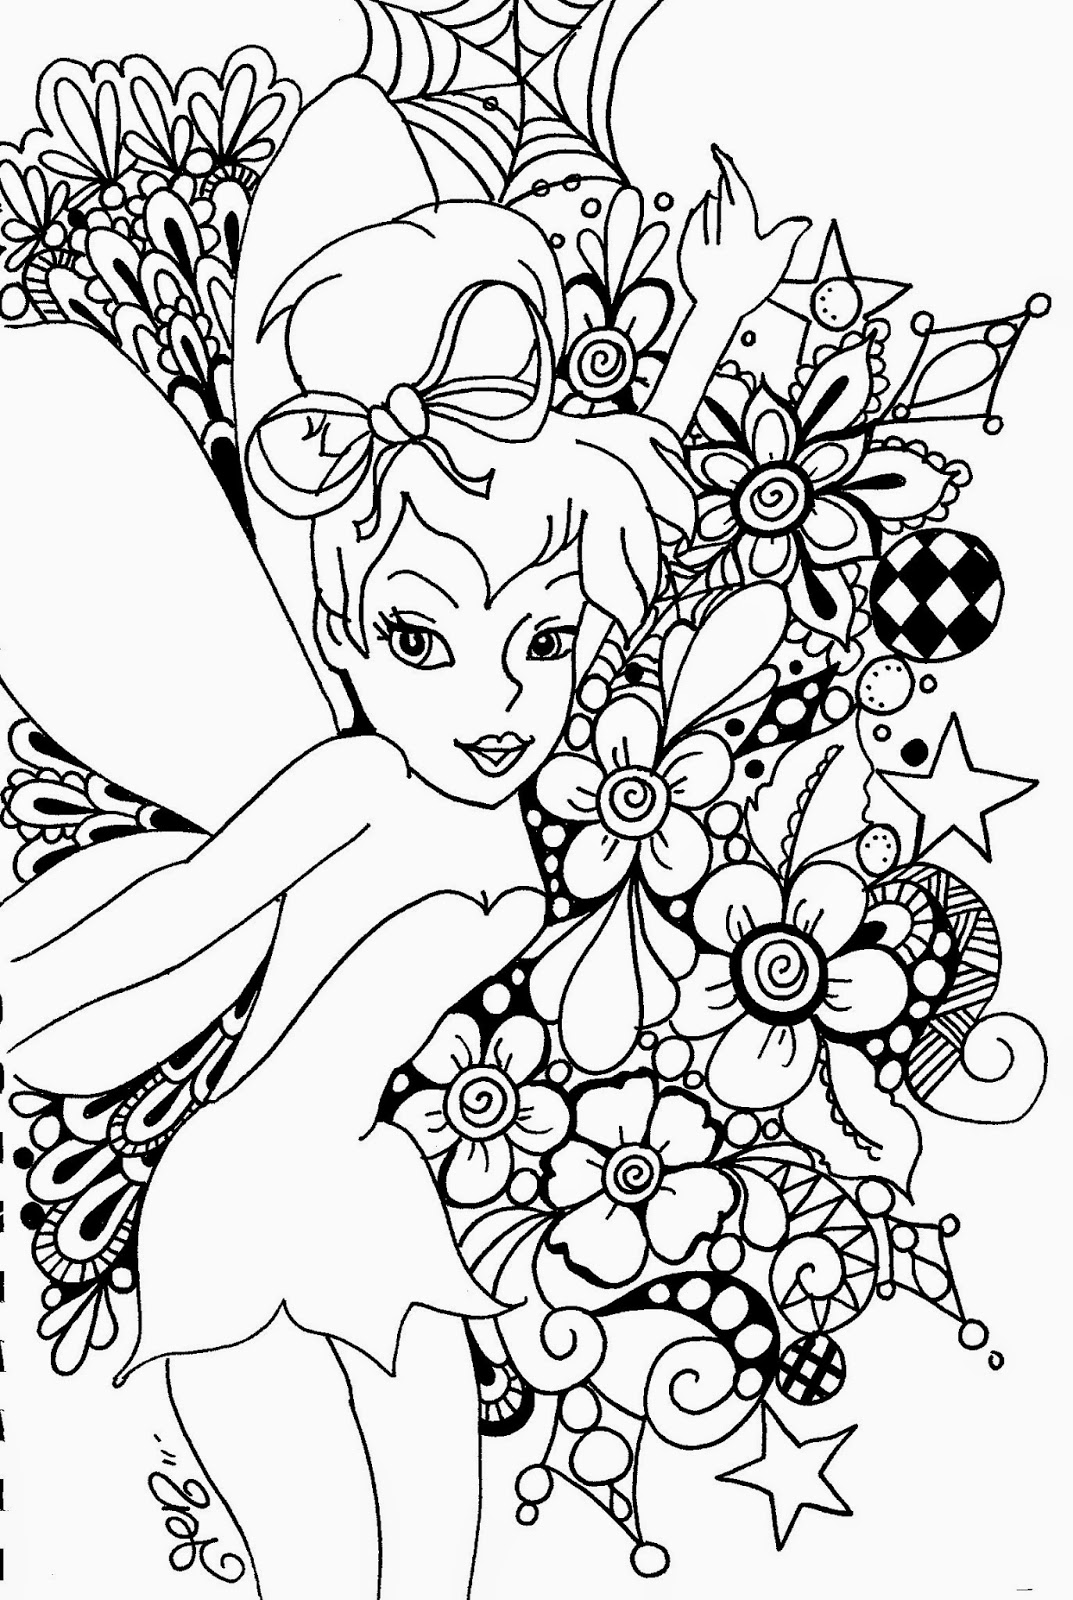 tinkerbell coloring sheets tinkerbell coloring pages team colors sheets tinkerbell coloring